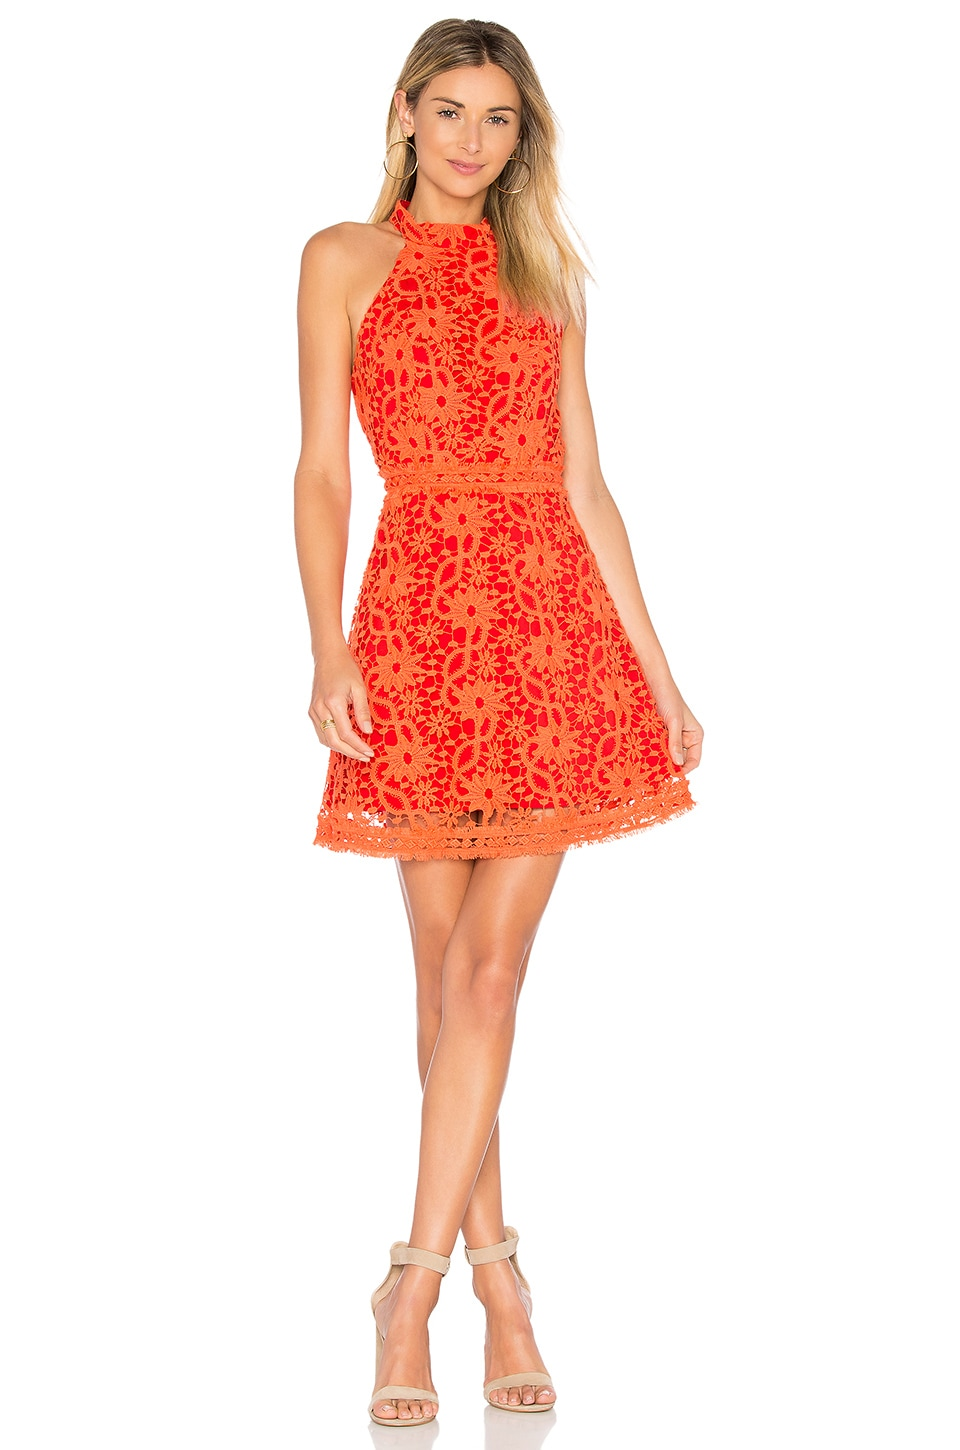 devlin Maryanne Dress in Tangerine